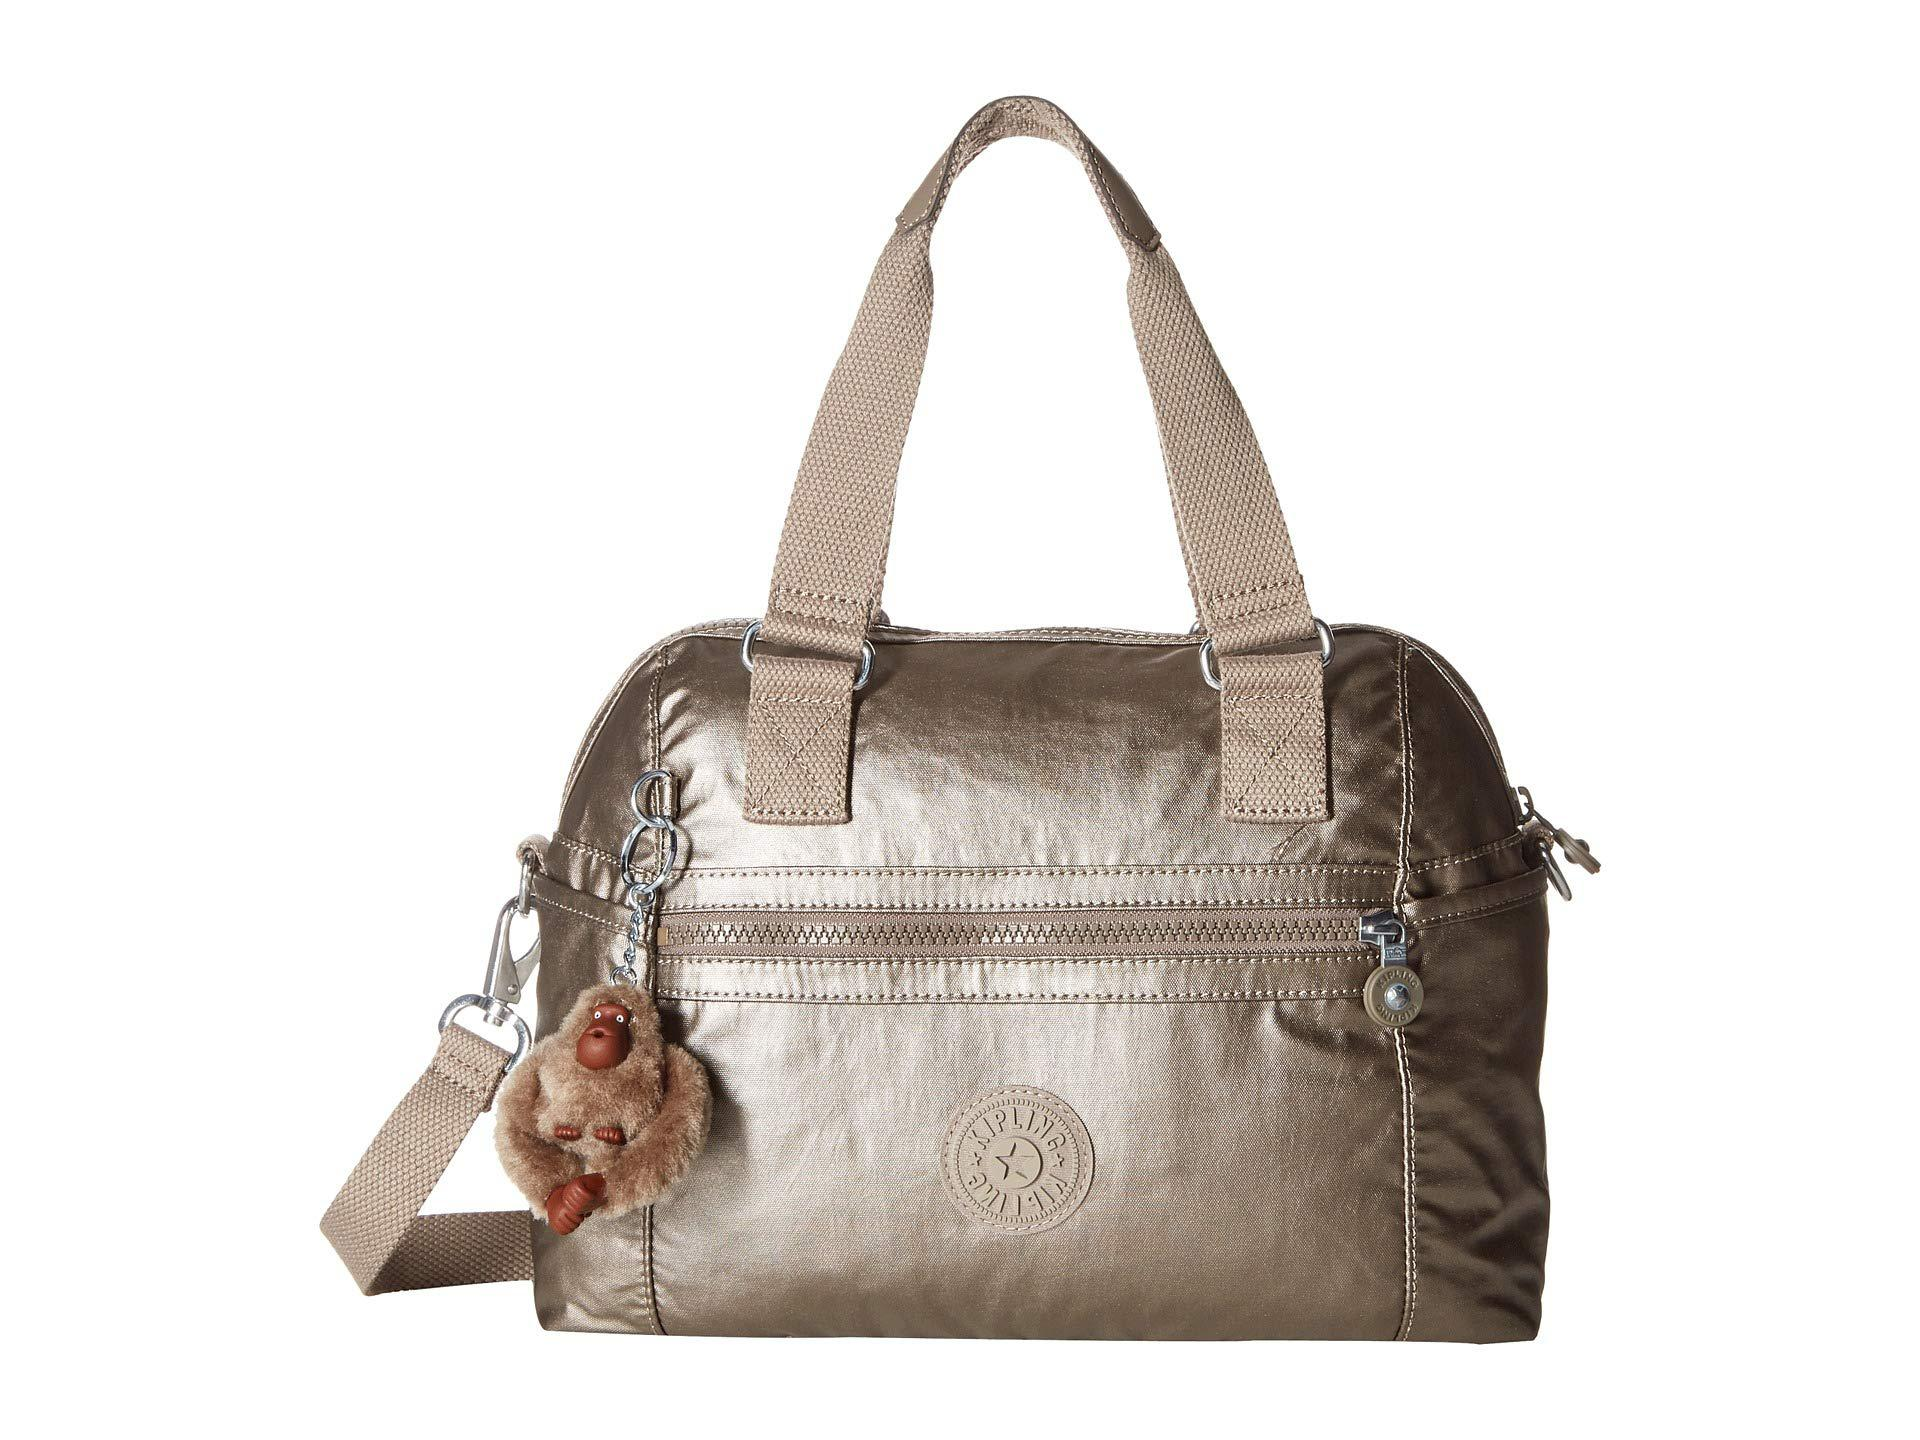 dfc9236dae Kipling Cora Handbag in Metallic - Save 31% - Lyst